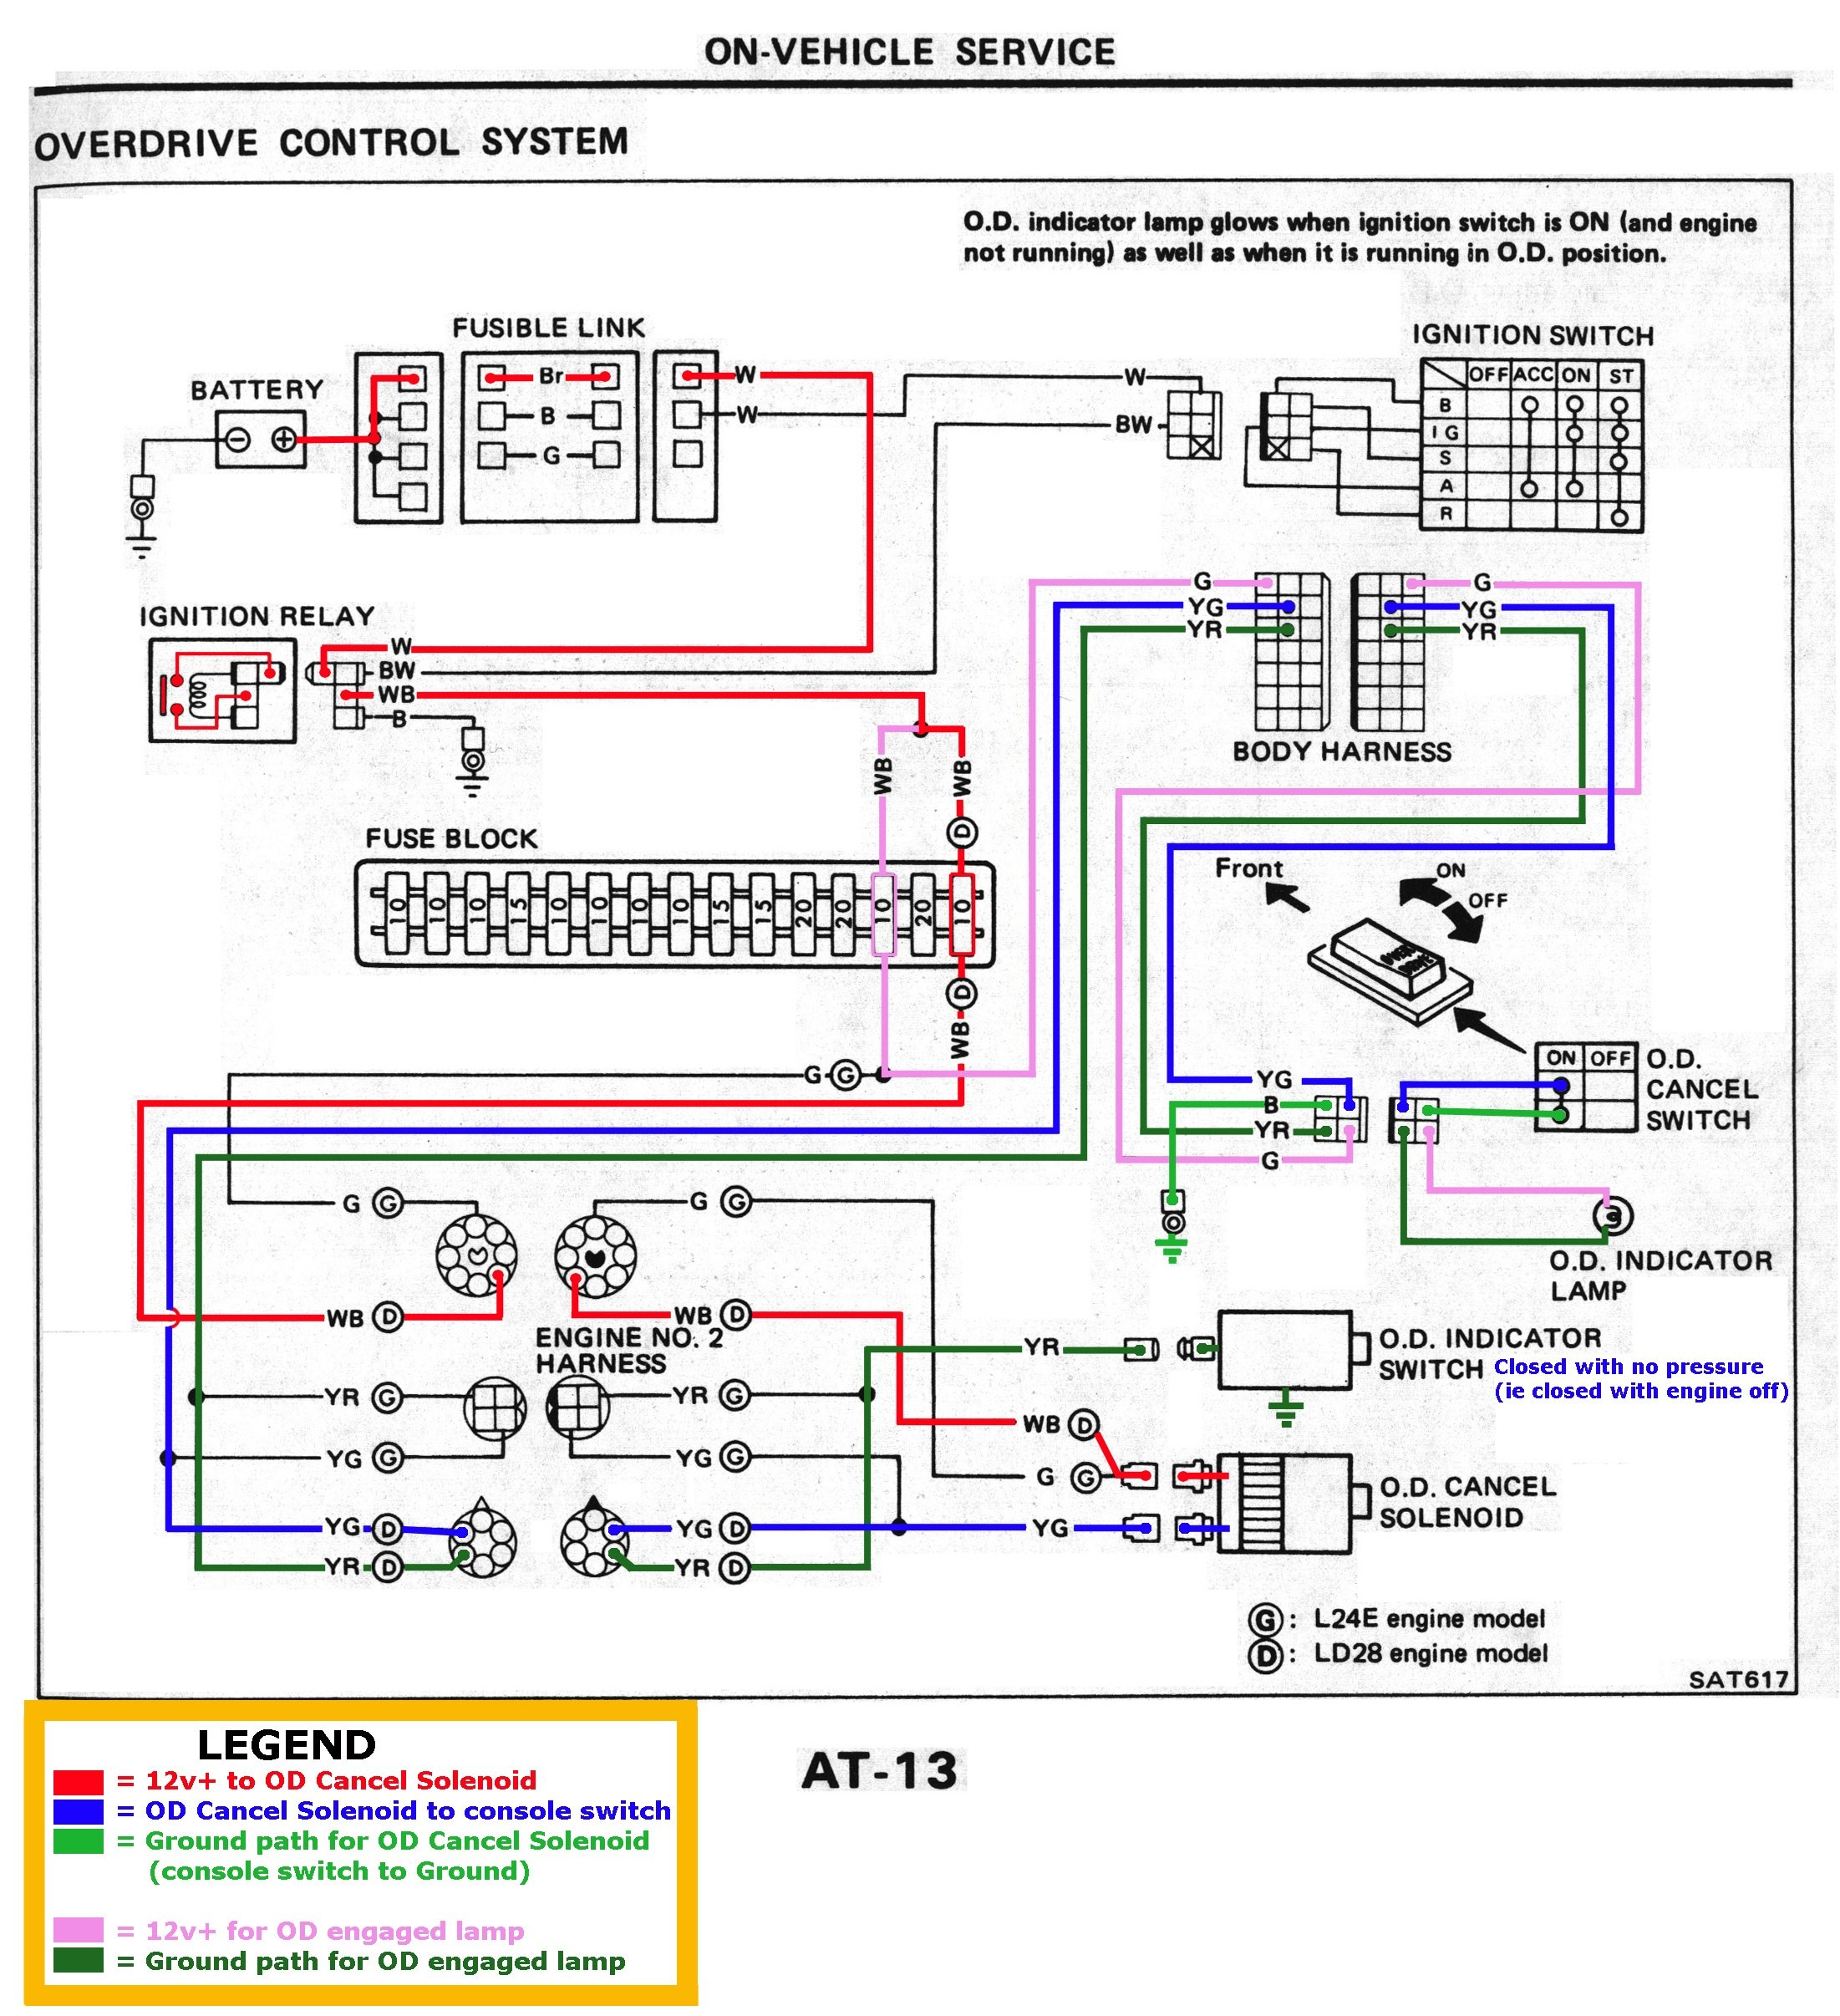 95 Nissan Maxima Engine Diagram Also Ignition Switch Wiring Diagram Nissan 240z Engine Diagram Of 95 Nissan Maxima Engine Diagram